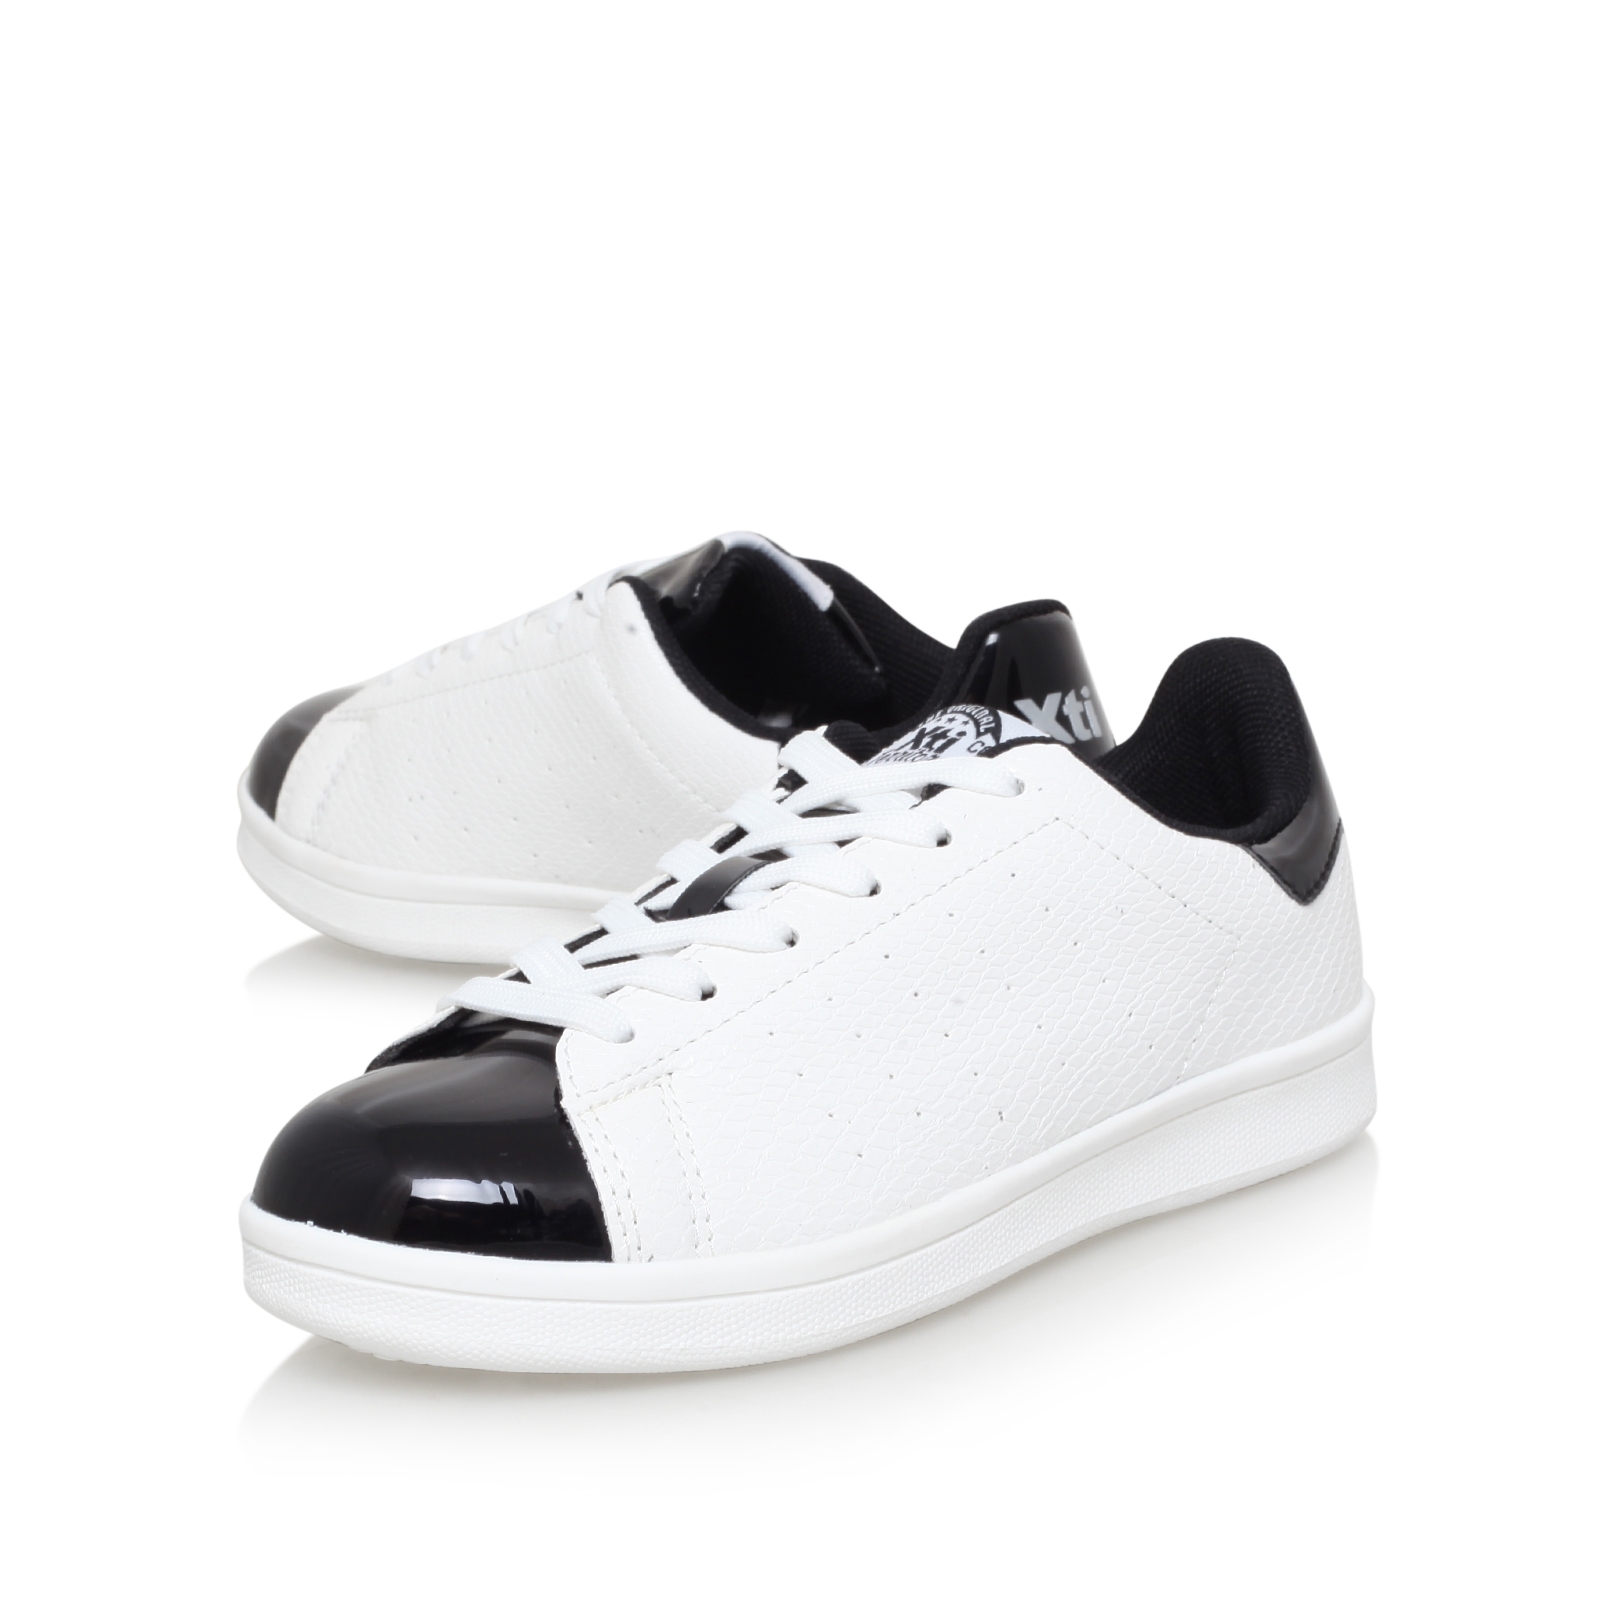 RACH Xti Rach White and Black Sneakers by XTI